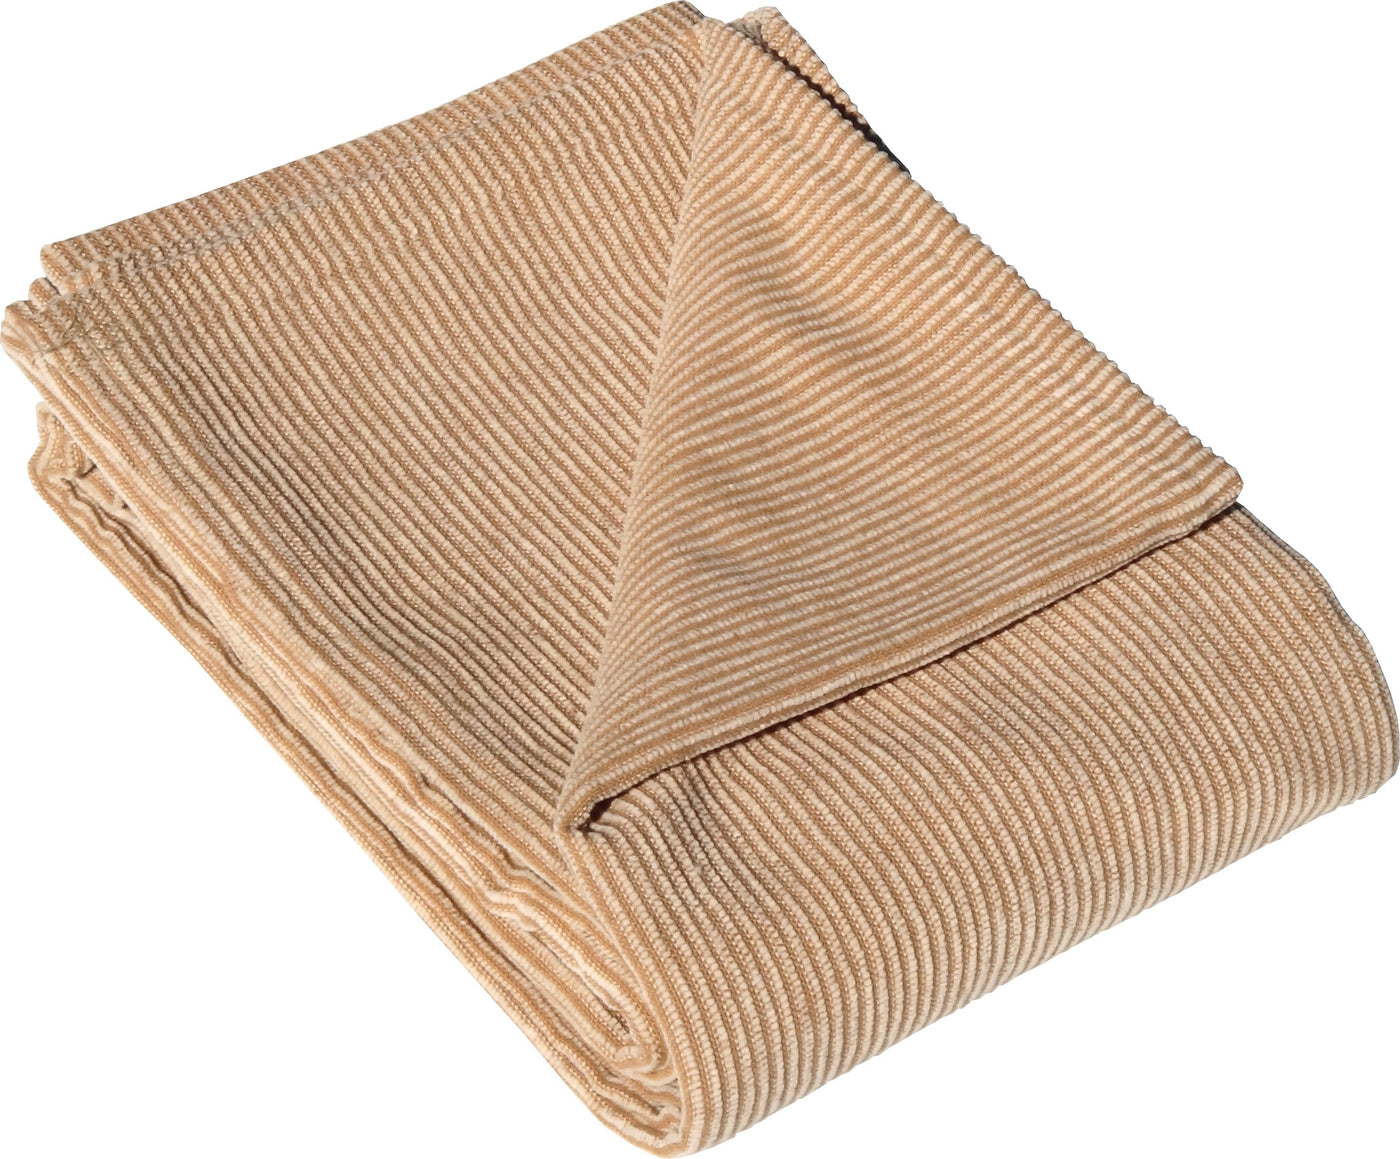 "Brown/Natl Stripe Chenille 46 x 67"" Throw Blanket"